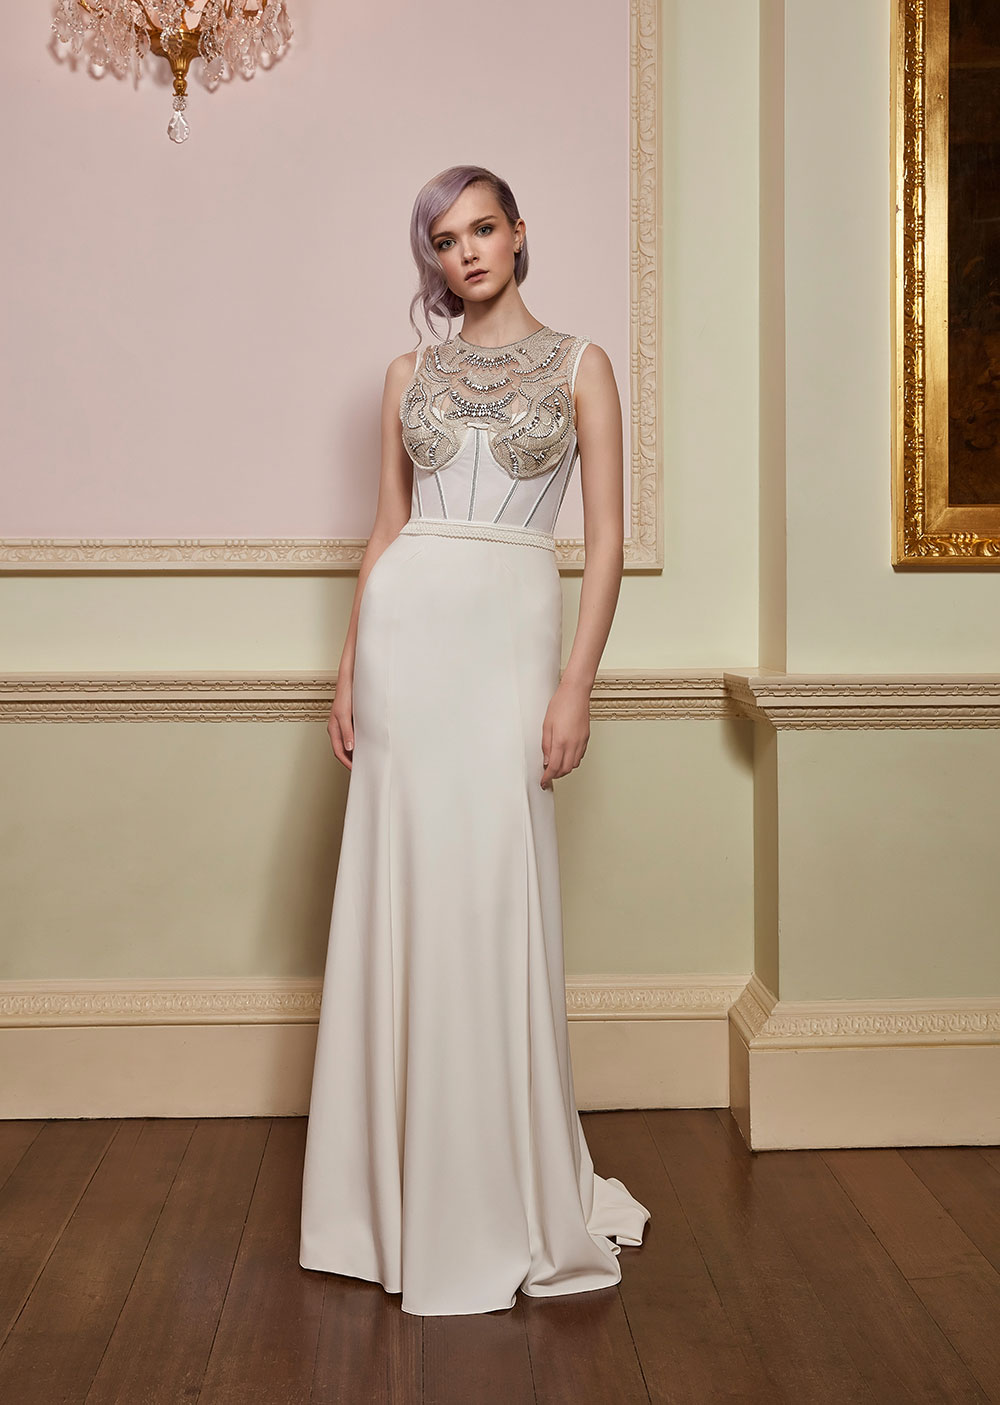 Siren - Jenny Packham 2018 Bridal Collection. www.theweddingnotebook.com